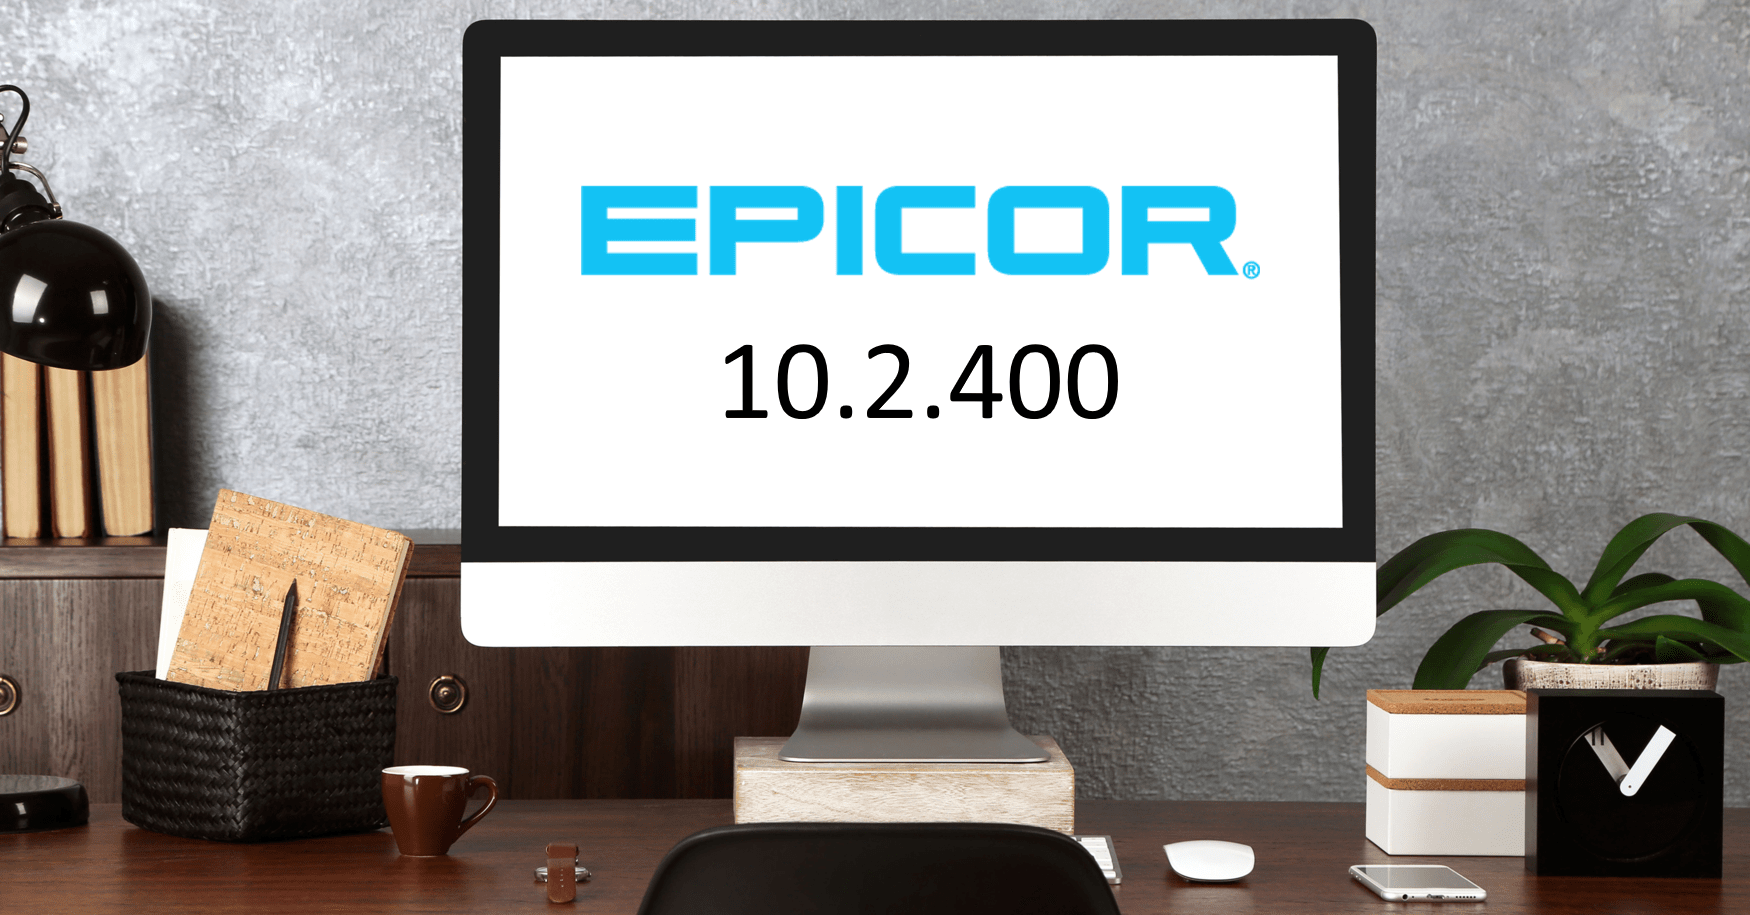 Overview of Epicor ERP 10.2.400